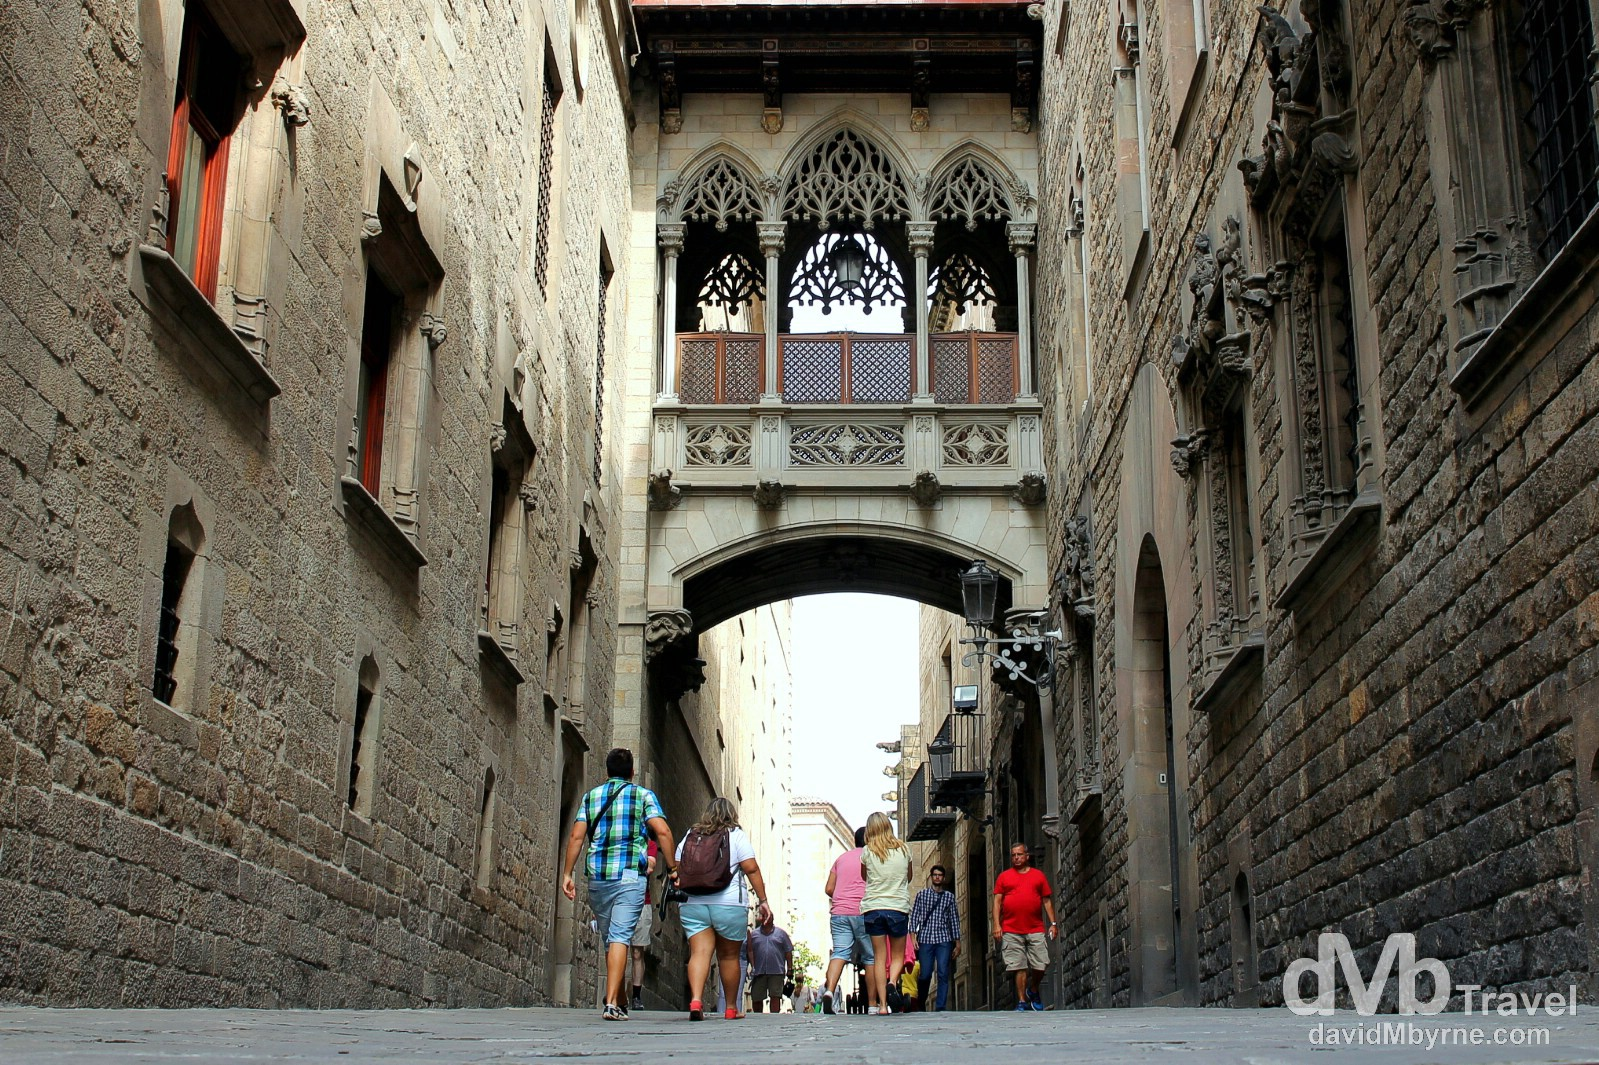 Architectural detail on Calle del Bisbe Irurita in Barri Gotic, Barcelona, Spain. June 17th, 2014.